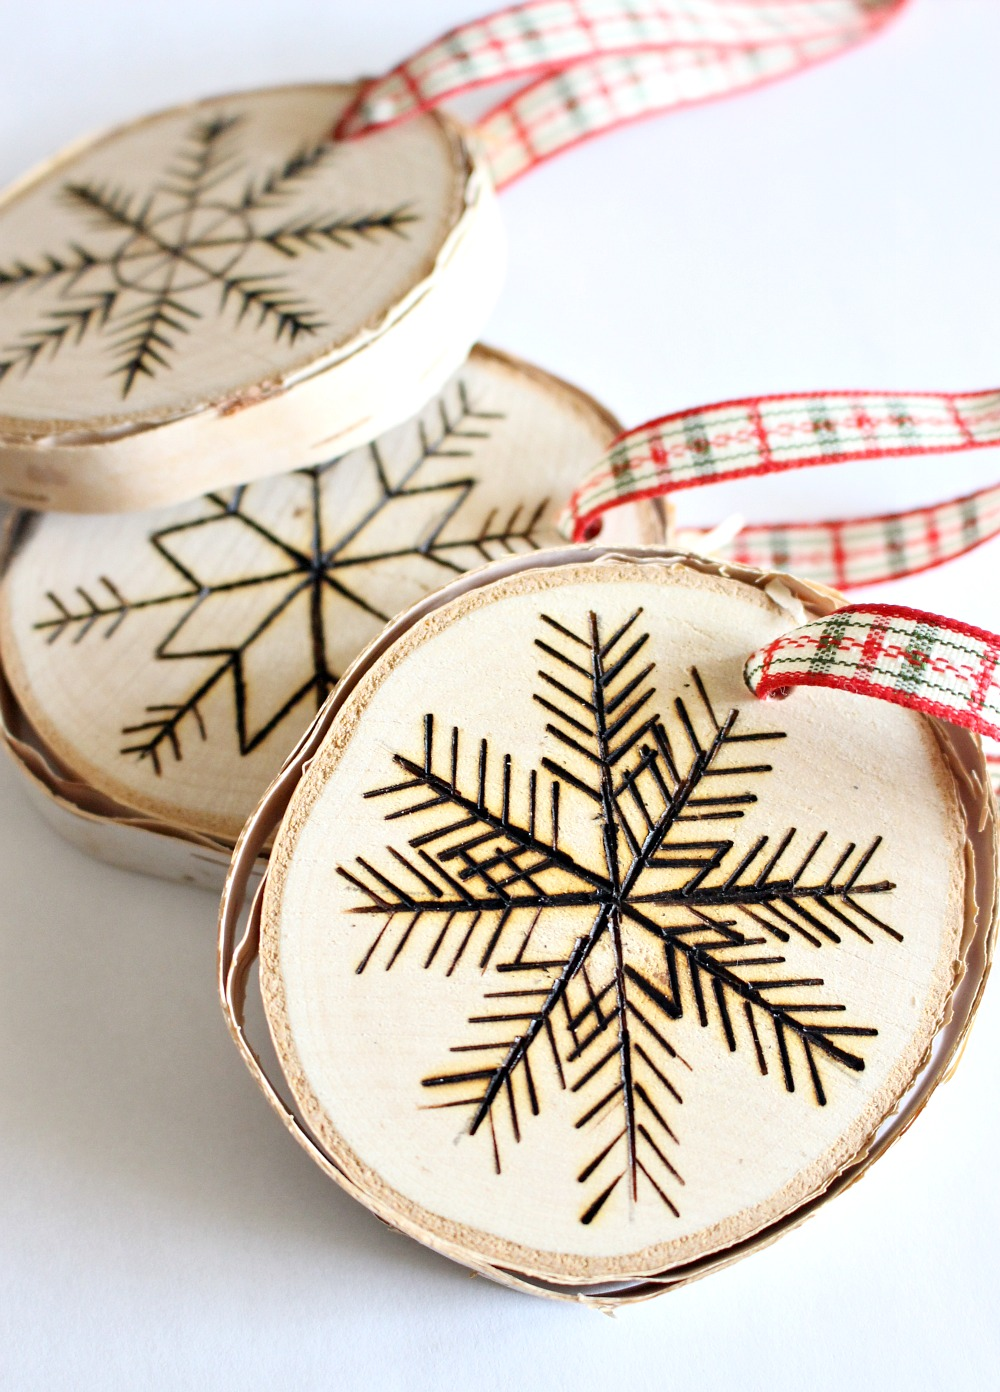 DIY Wood Burned Birch Slice Ornament